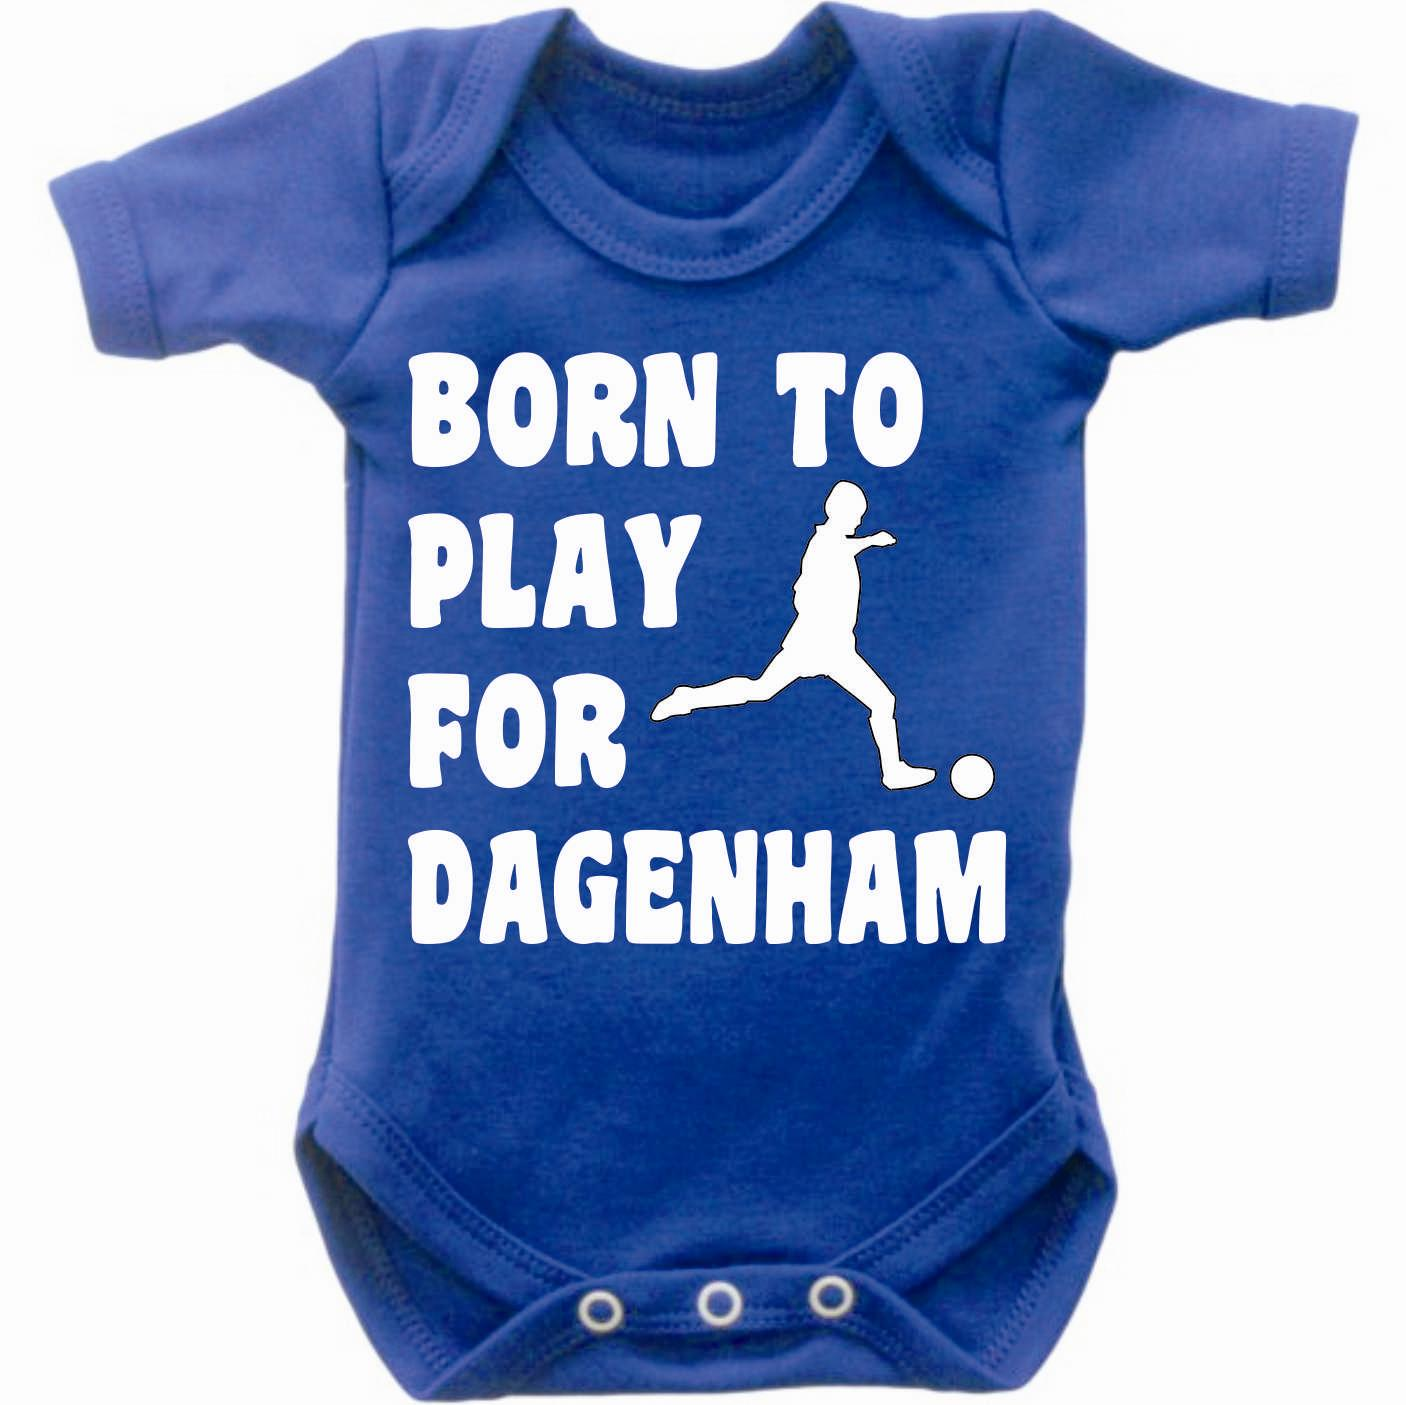 Born-To-Play-Football-For-Dagenham-Baby-Grow-Bodysuit-Romper-Vest